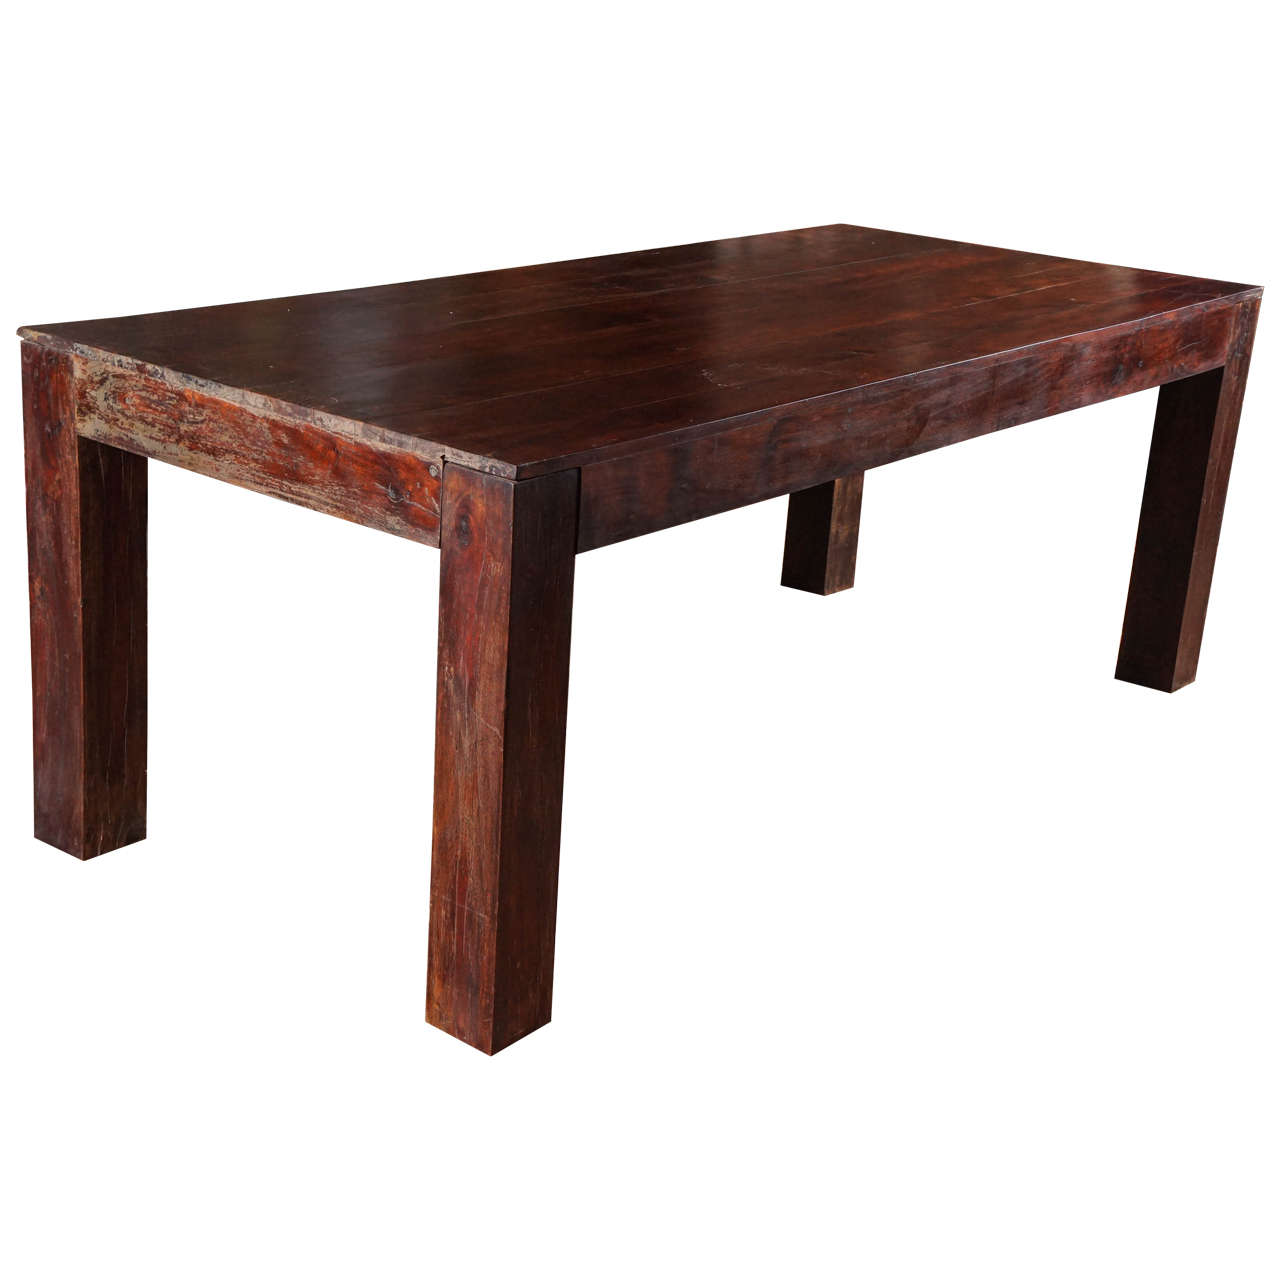 Sheesham (Indian Rosewood) Dining Table, Ca. 1950s 1